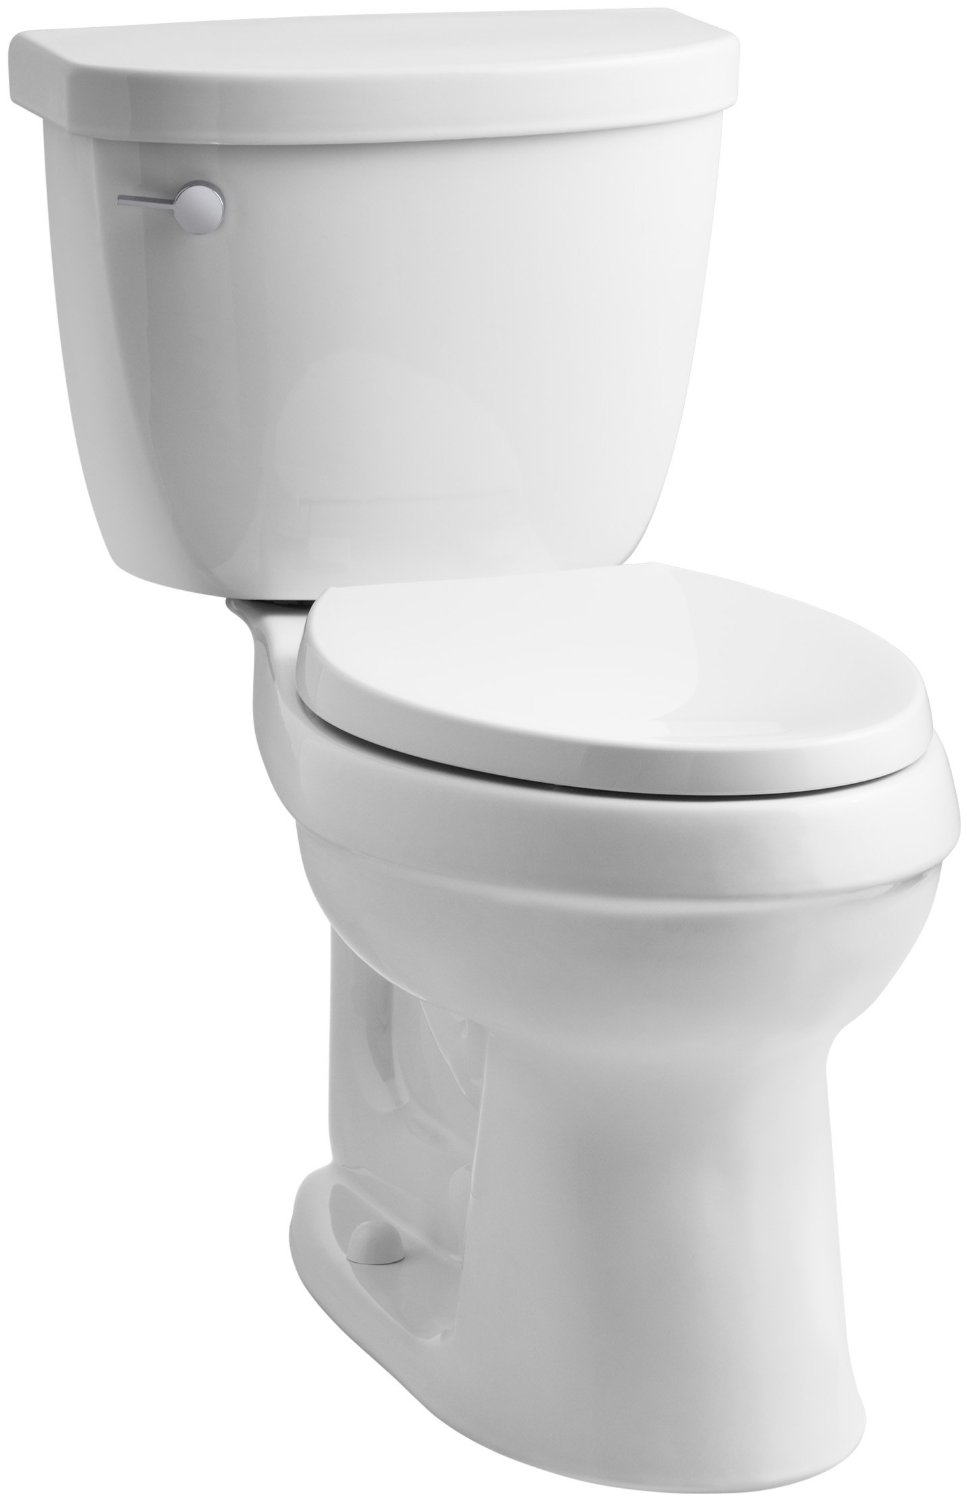 Kohler Cimarron Comfort Height Toilet Review | Toilet Review Guide